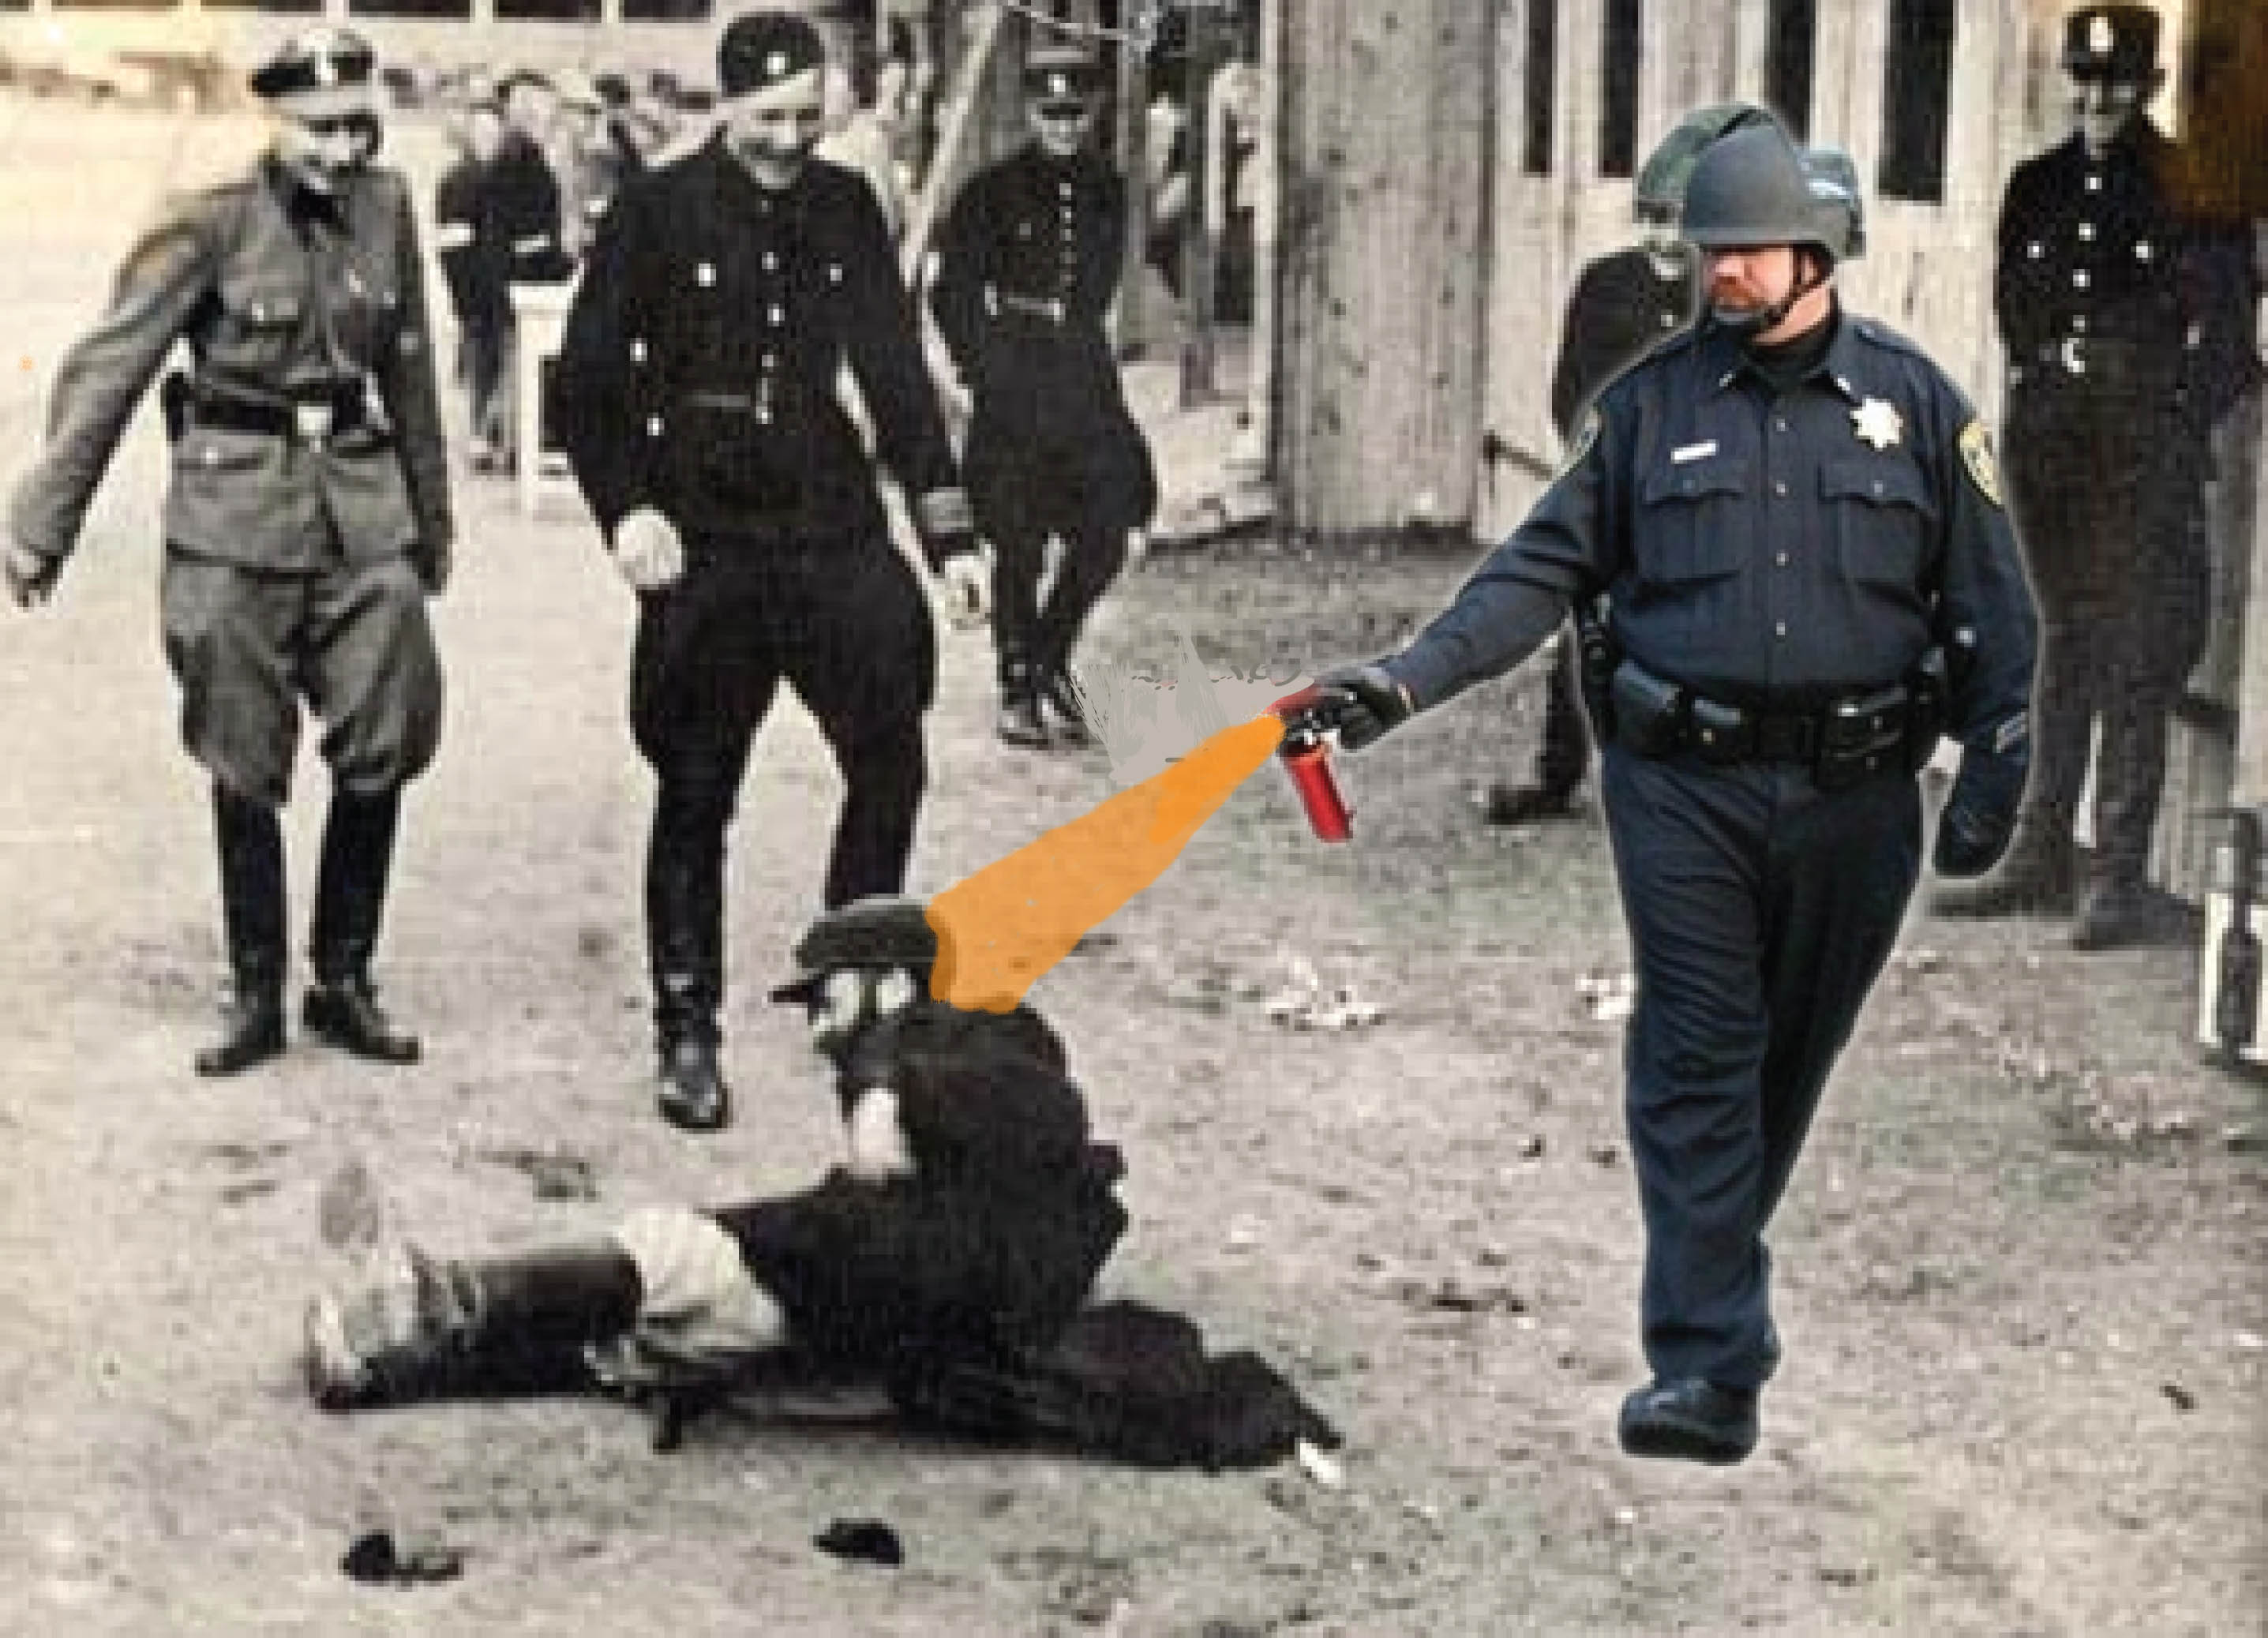 ed1 image 205799] casually pepper spray everything cop know your meme